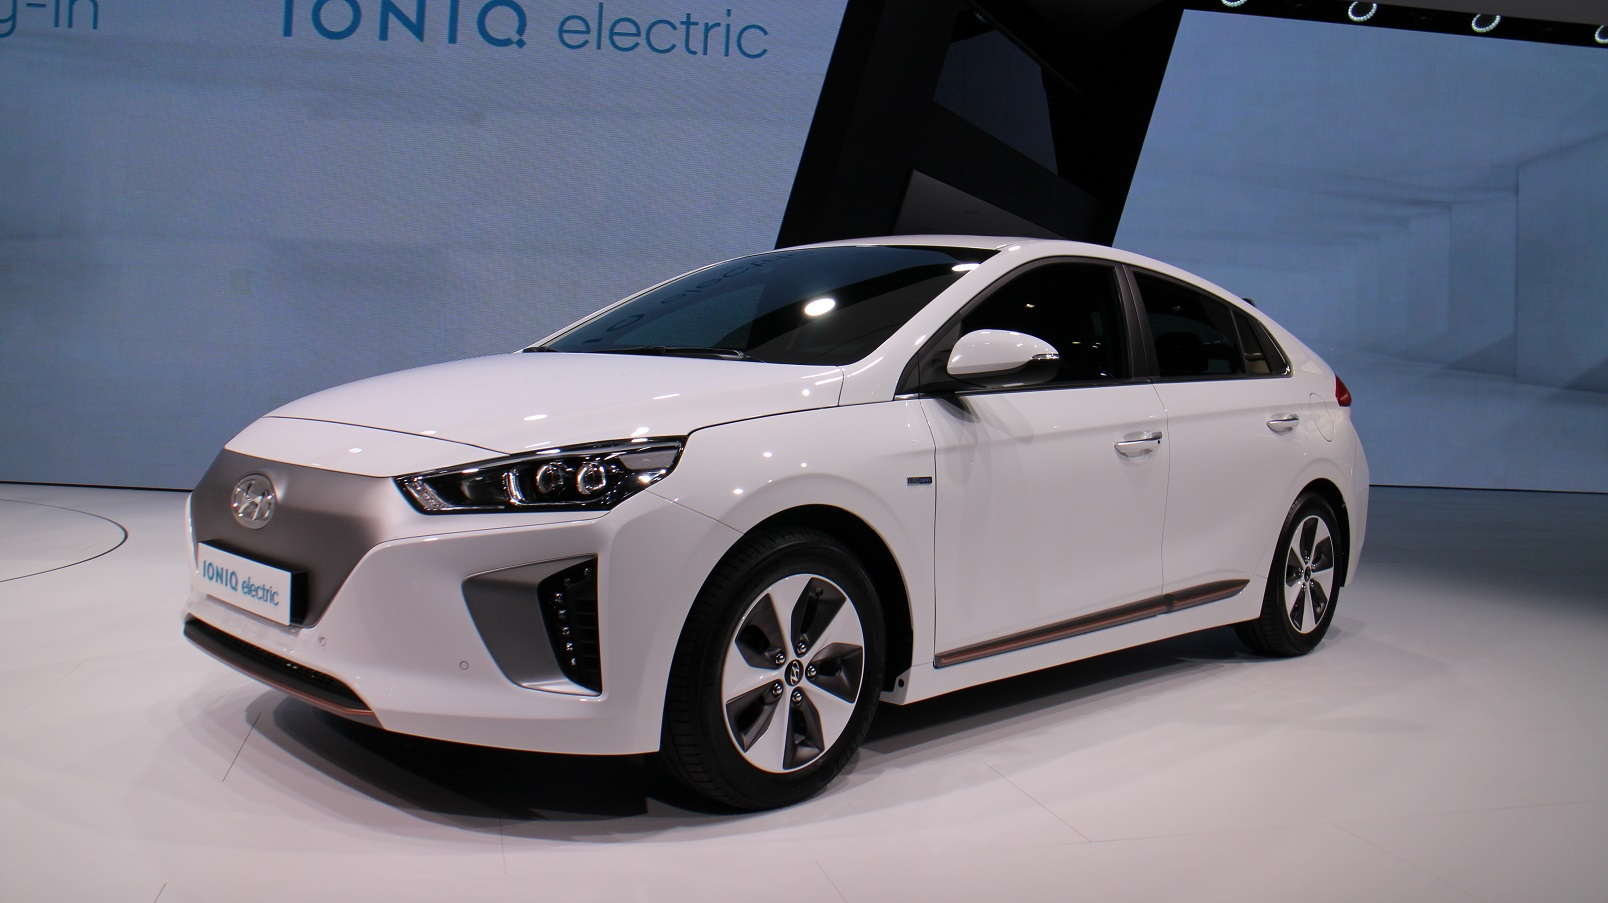 and electric diagram of teeth their numbers hyundai ioniq car offered on 39ioniq unlimited